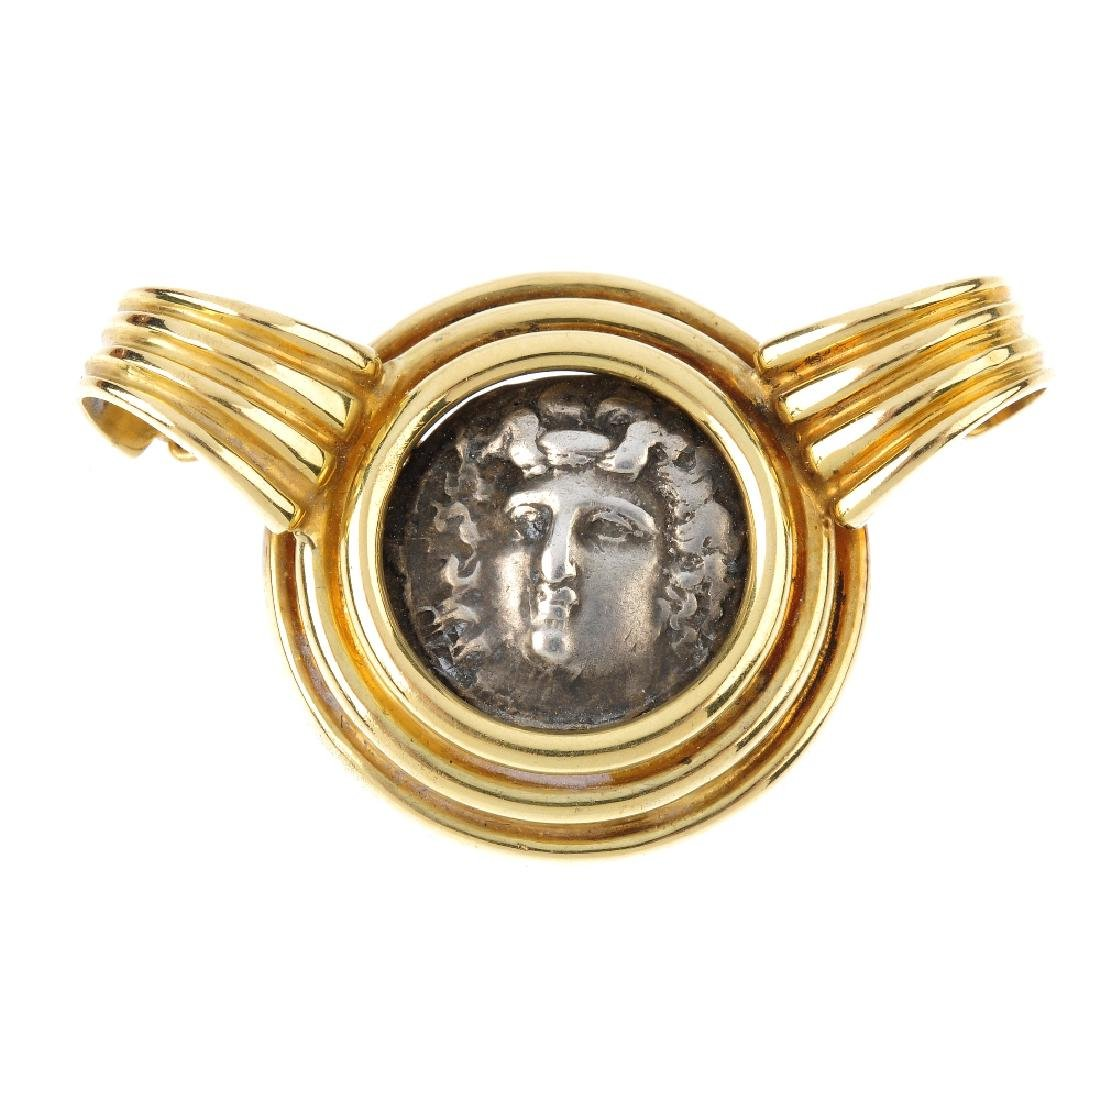 A coin pendant. The central coin depicting Larissa of